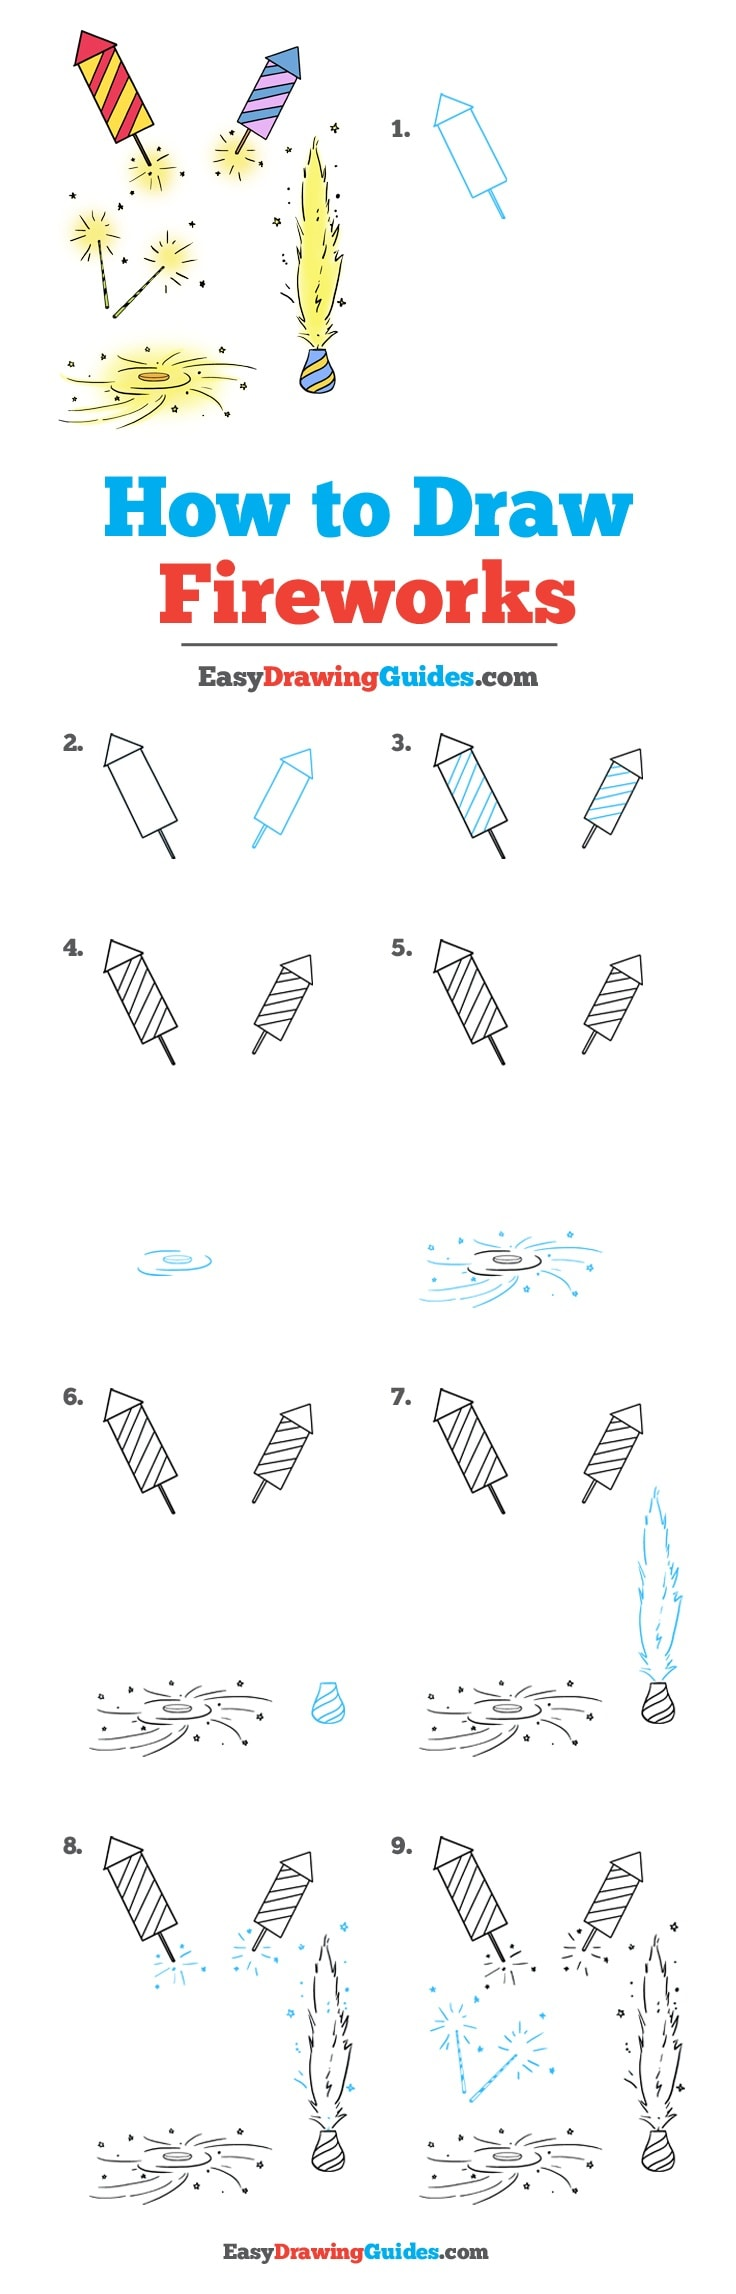 How to Draw Fireworks